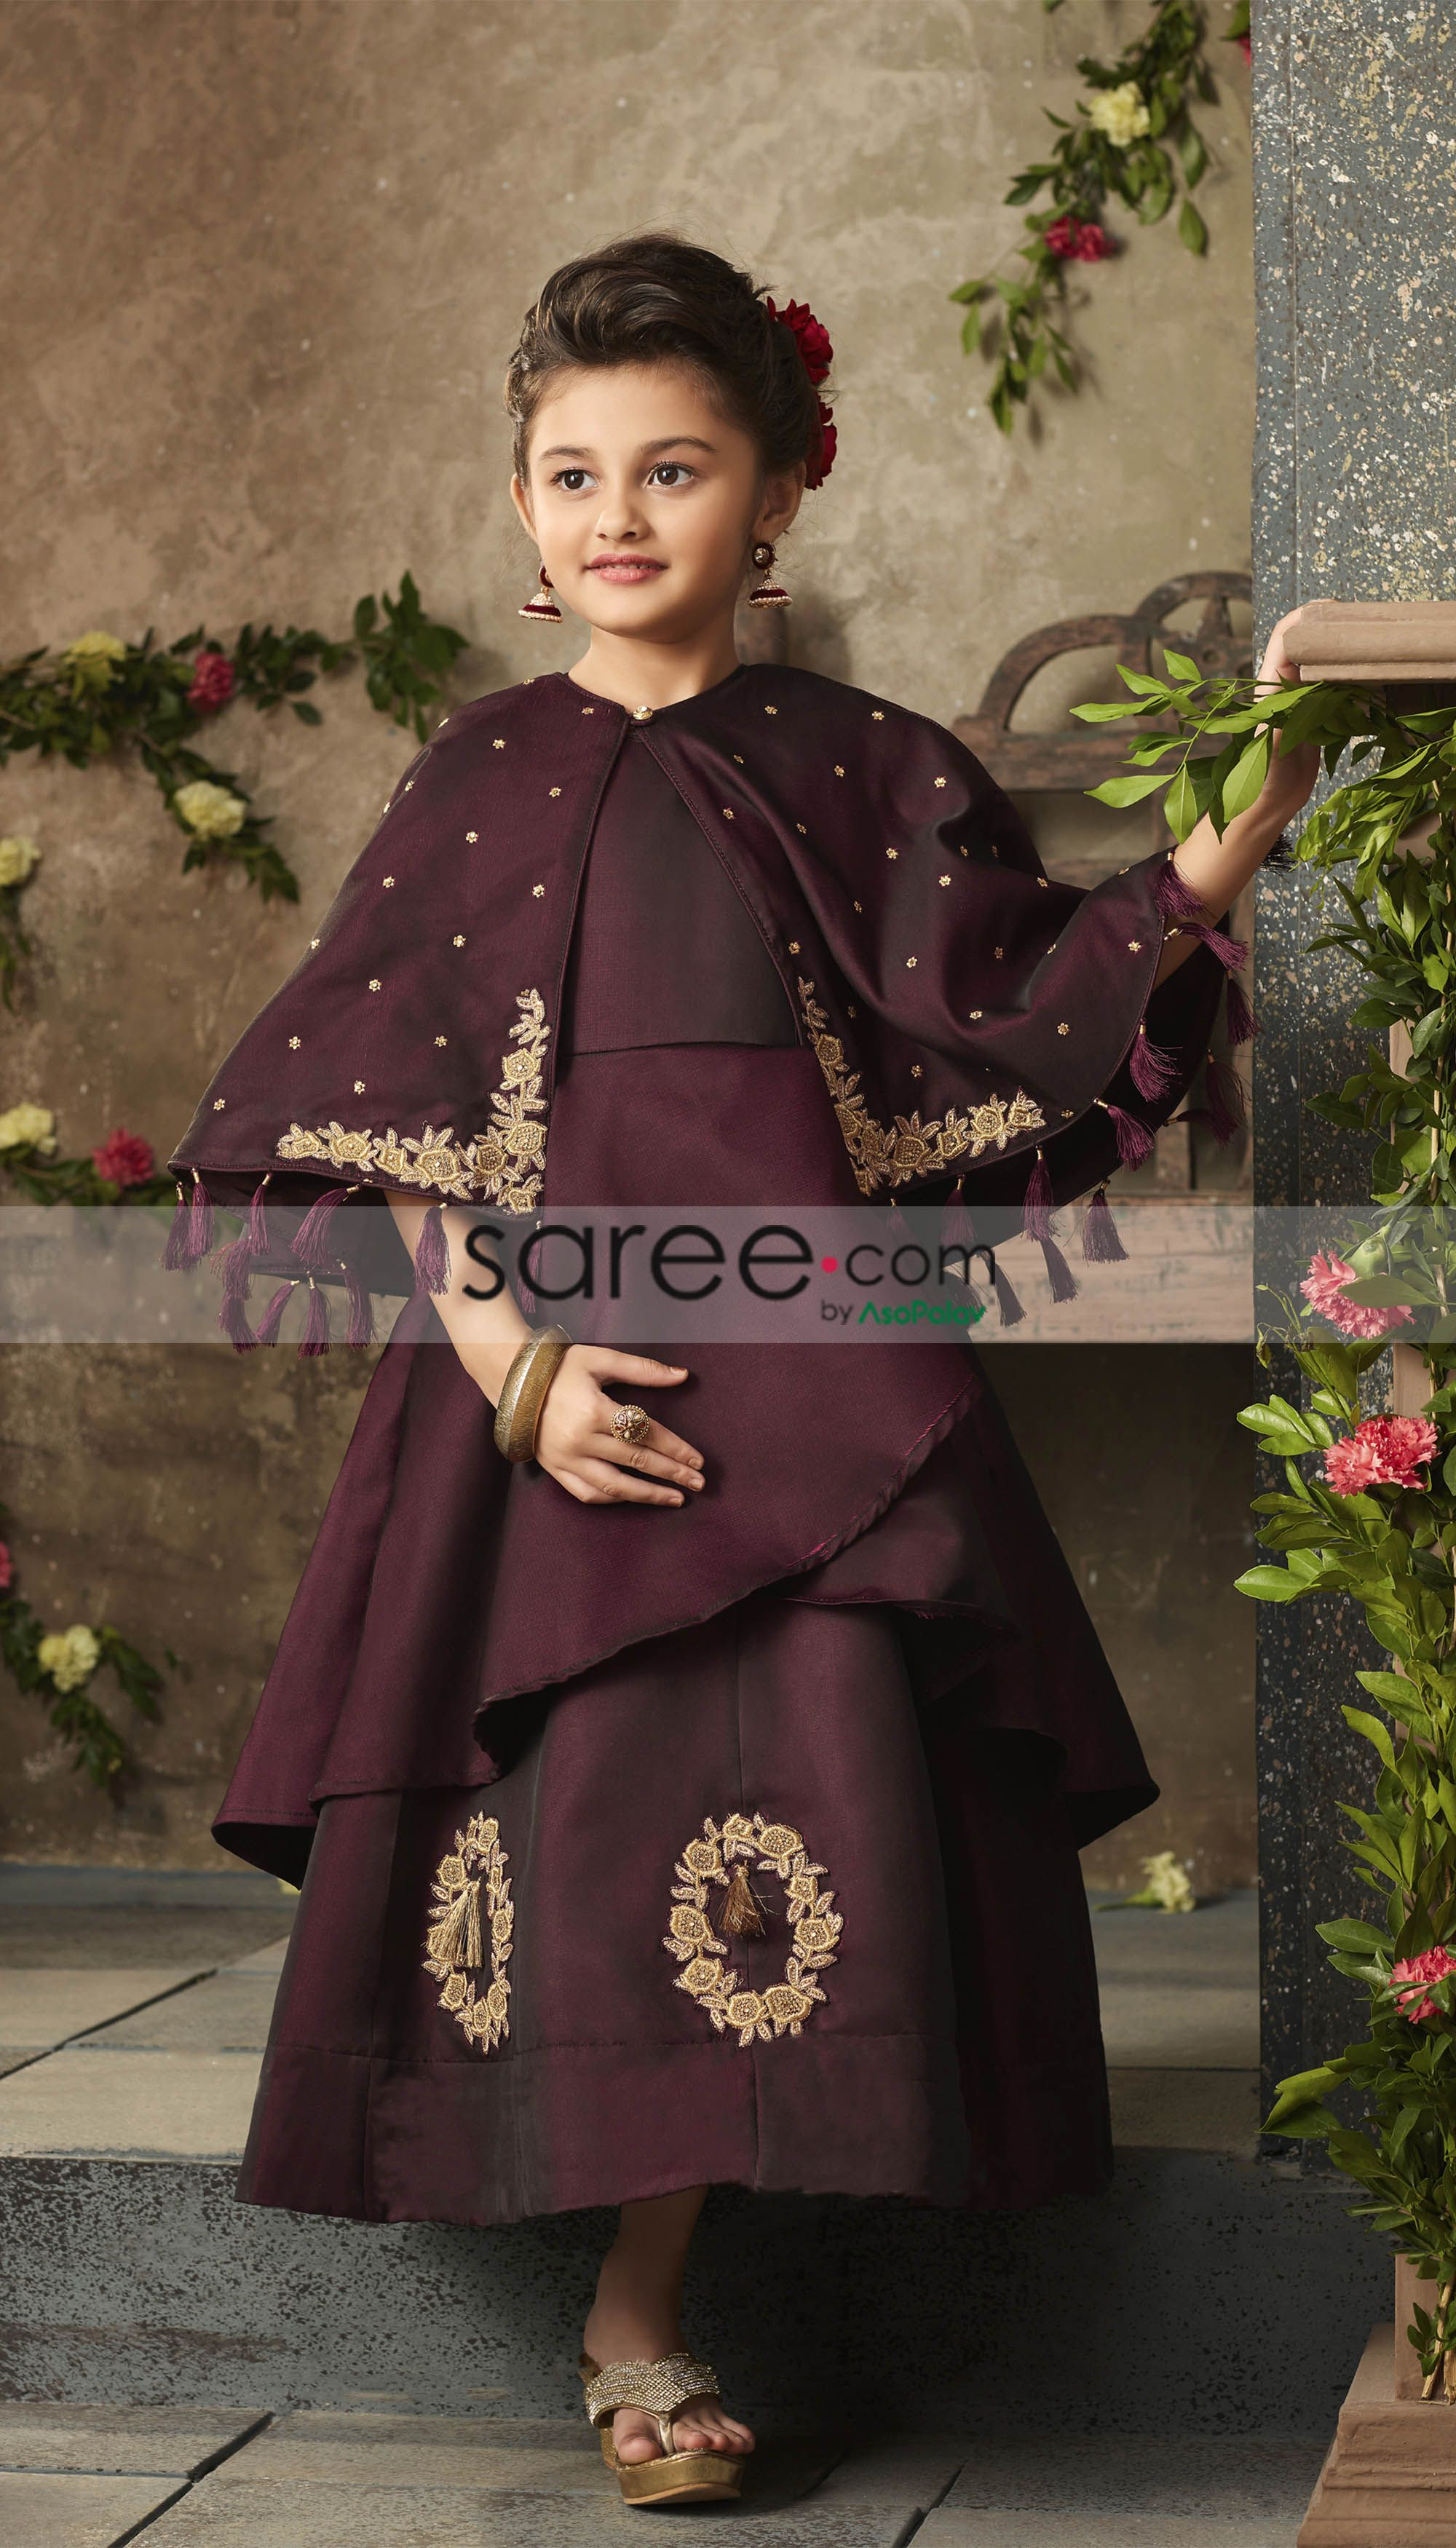 c1a9fe90f2 Wine Violet Empire Line Satin Silk Baby Girl s Gown with Shrug Cape ...